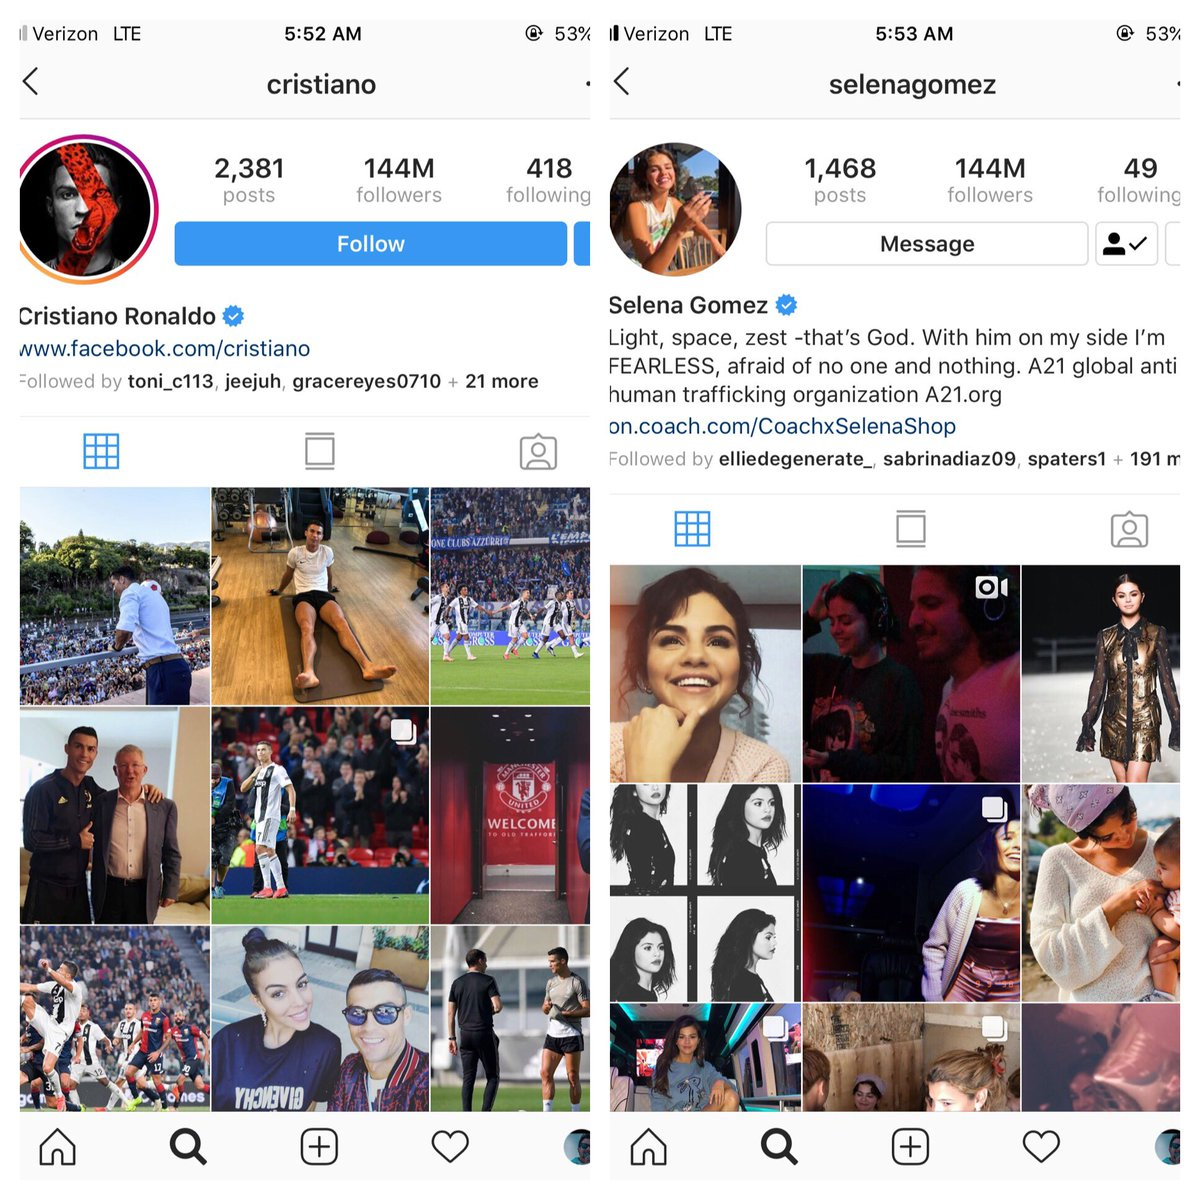 Jammin1077 On Twitter Selena Gomez Lost Her Title Of The Most Followed Person On Instagram Yesterday To Soccer Star Cristiano Ronaldo They Both Have More Than 144 Million Followers But Last Night